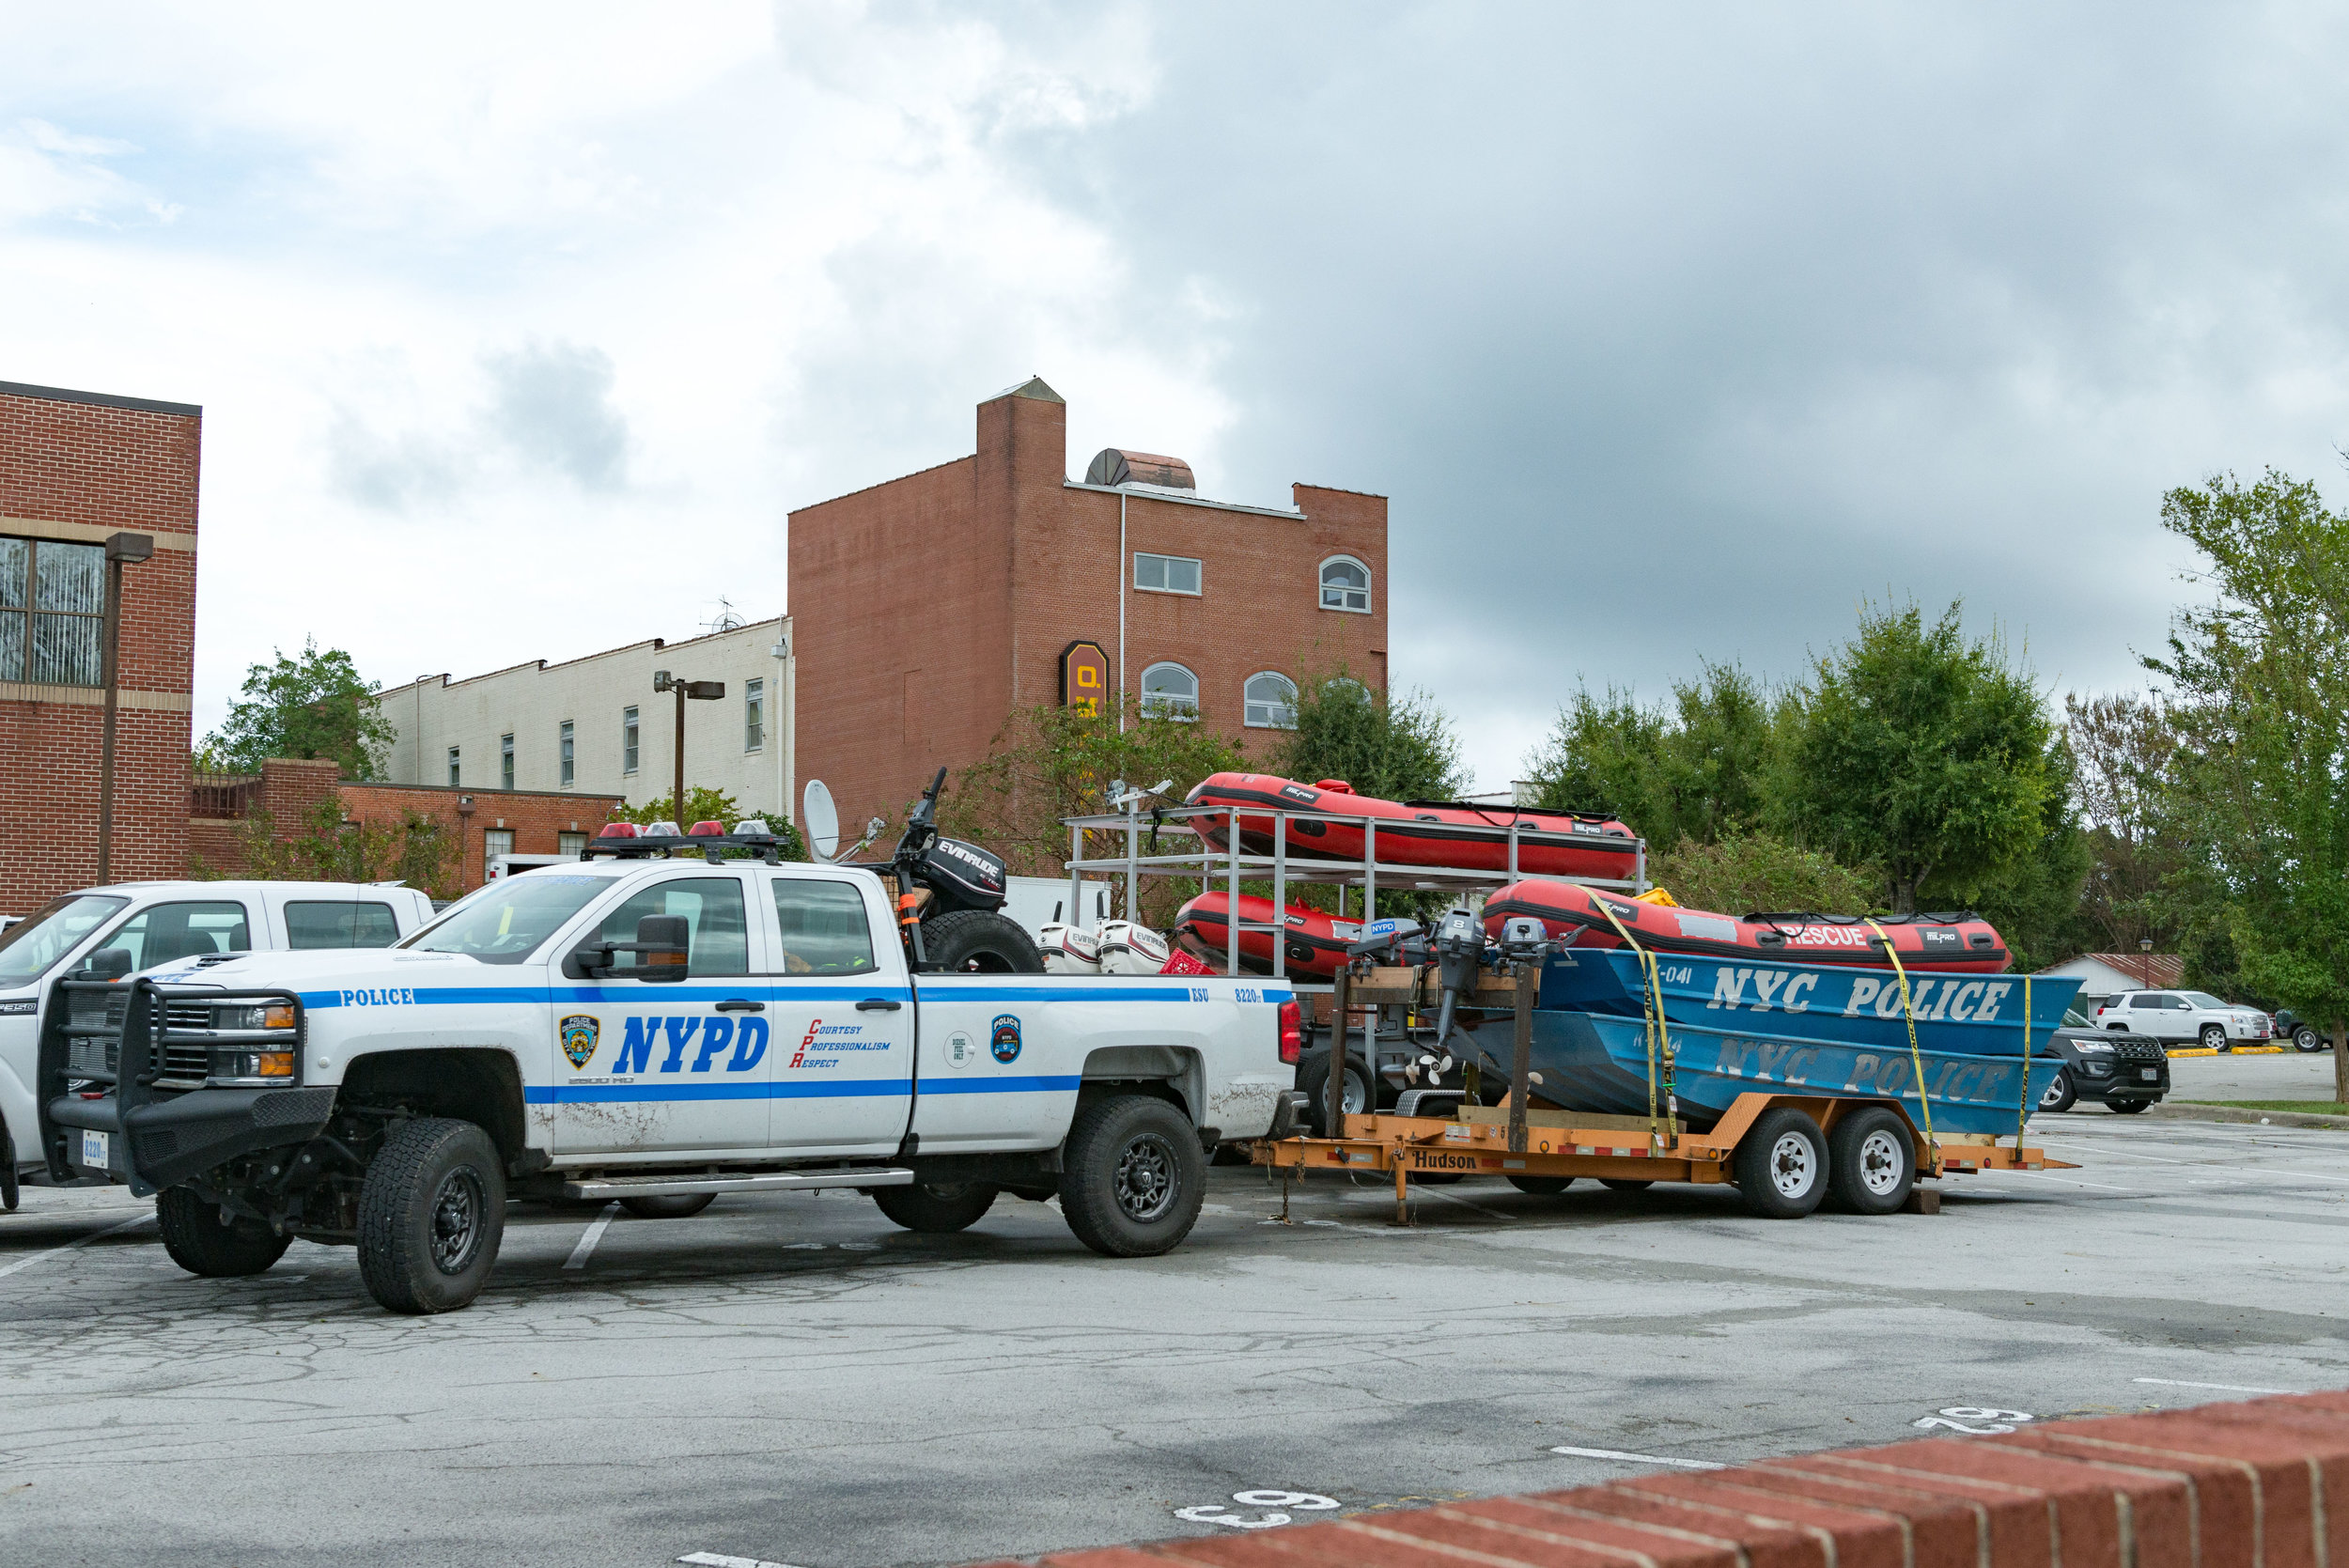 September 16, 2018, New Bern, NC-  New York City police boats are deployed as part of the Hurricane Florence response.